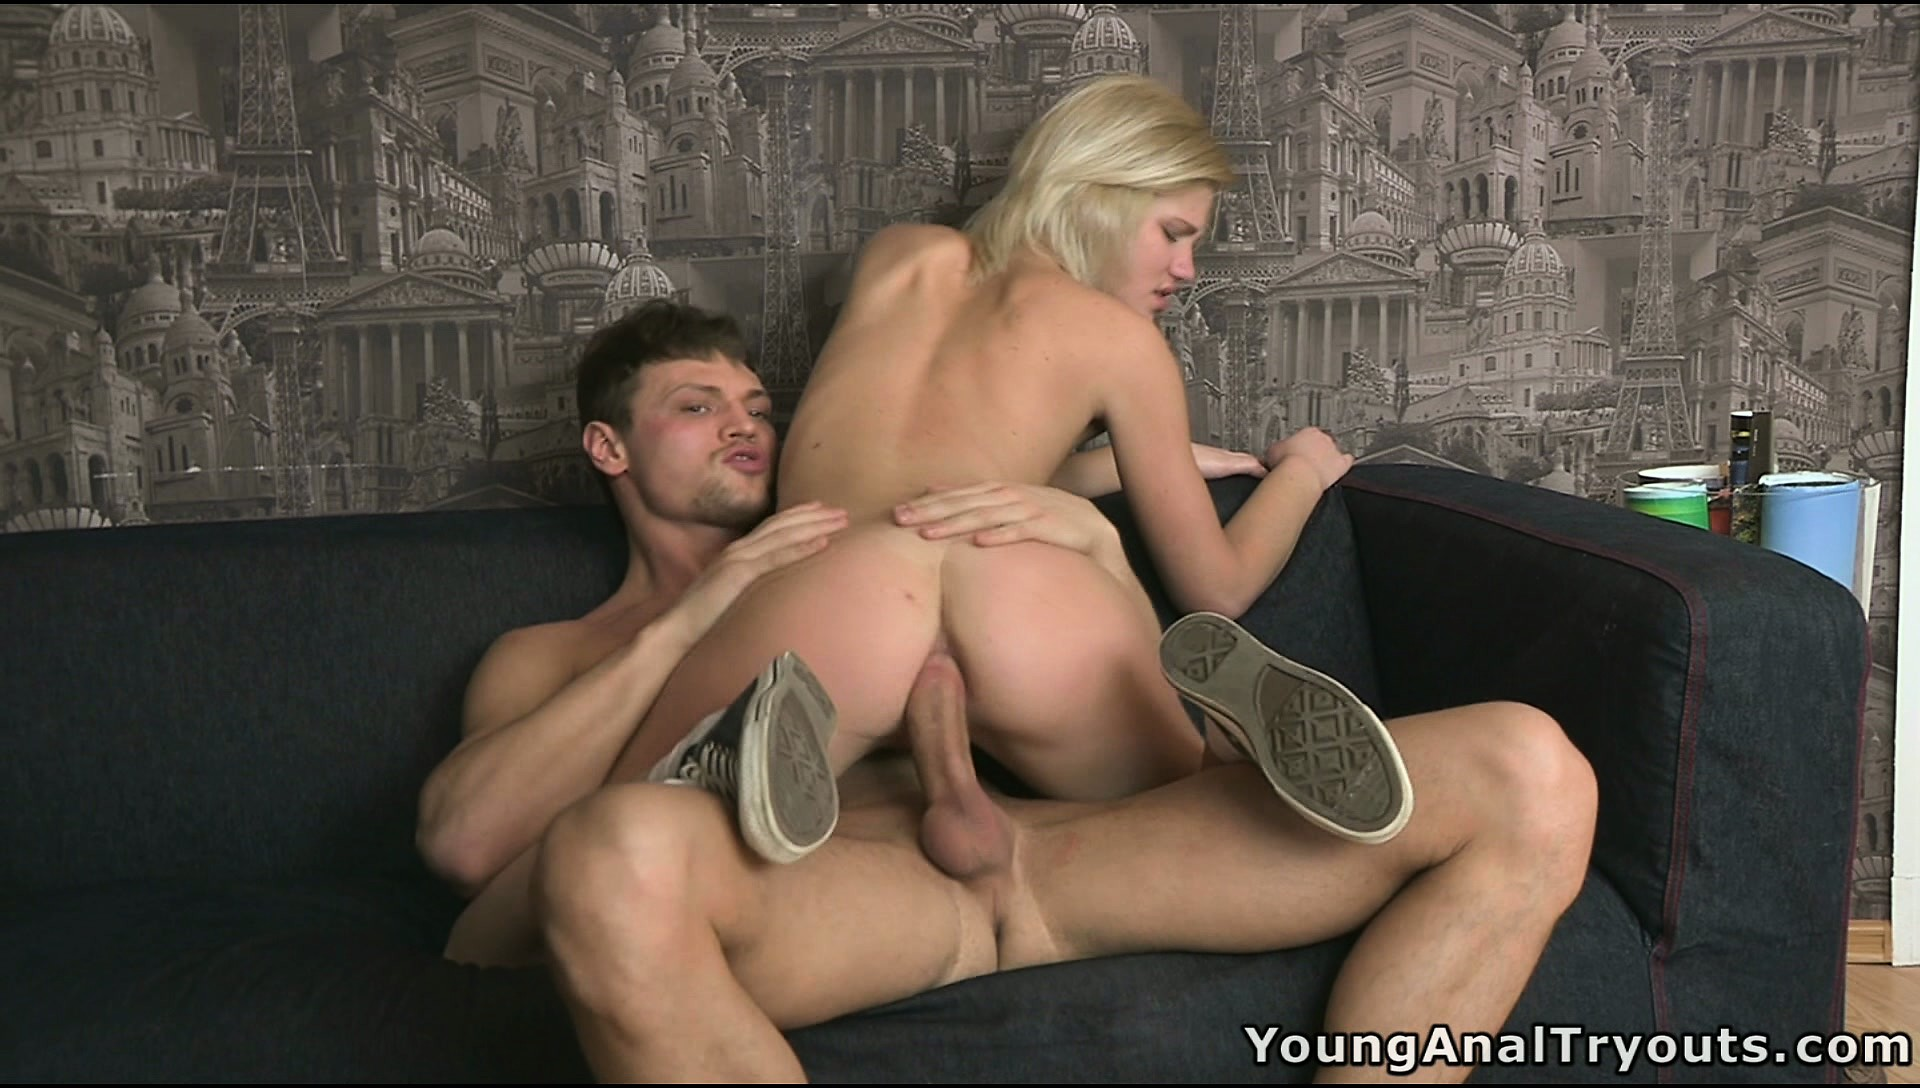 Porno Video of Shelly Experiences Amazing Pleasure Riding That Cock And Taking It Deep From Behind